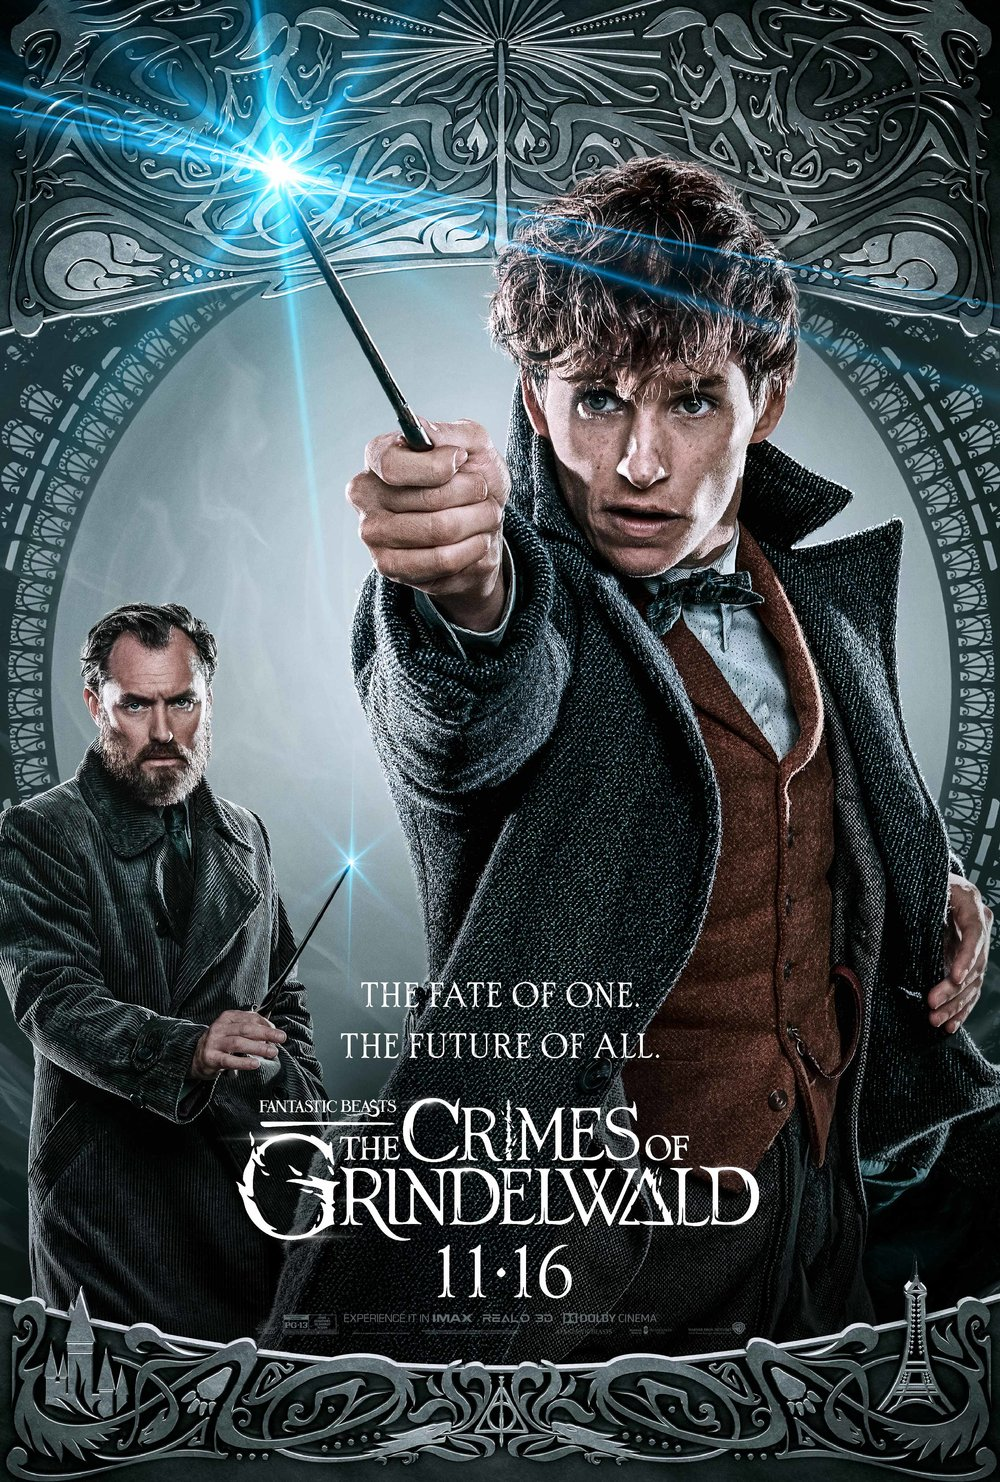 Fantastic Beasts: The Crimes of Grindelwald  (2018) - Directed by: David YatesStarring: Eddie Redmanyne, Johnny Depp, Zoe Krzvitz,Ezra Miller, Katherine Waterston, Dan Fogler, Jude LawRated: PG-13 for Some Sequences of Fantasy ActionRunning Time: 2 h 14 mTMM Score: 2.5 stars out of 5STRENGTHS: Production Design, Special Effects, Some ActingWEAKNESSES: Jumbled Story, Fan Service Over Substance